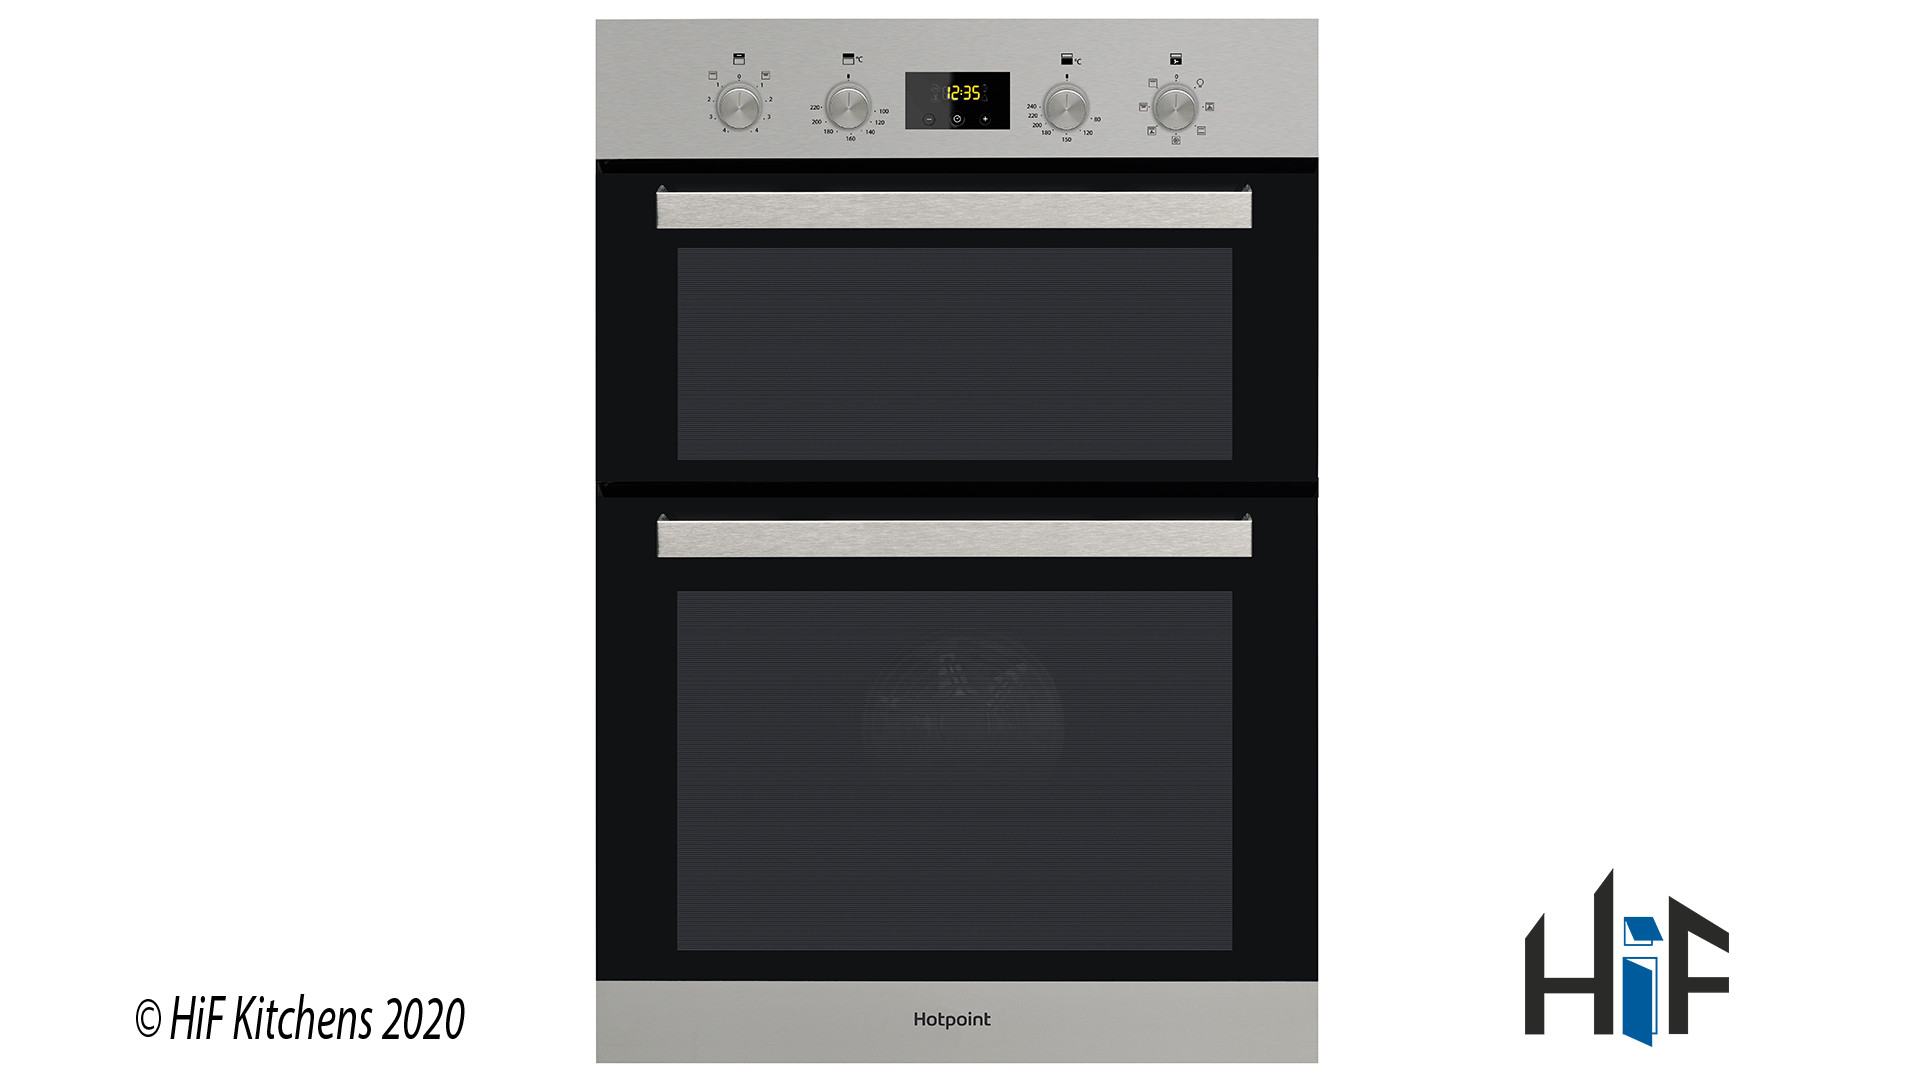 Hotpoint Class 3 DKD3 841 IX Built-In Oven